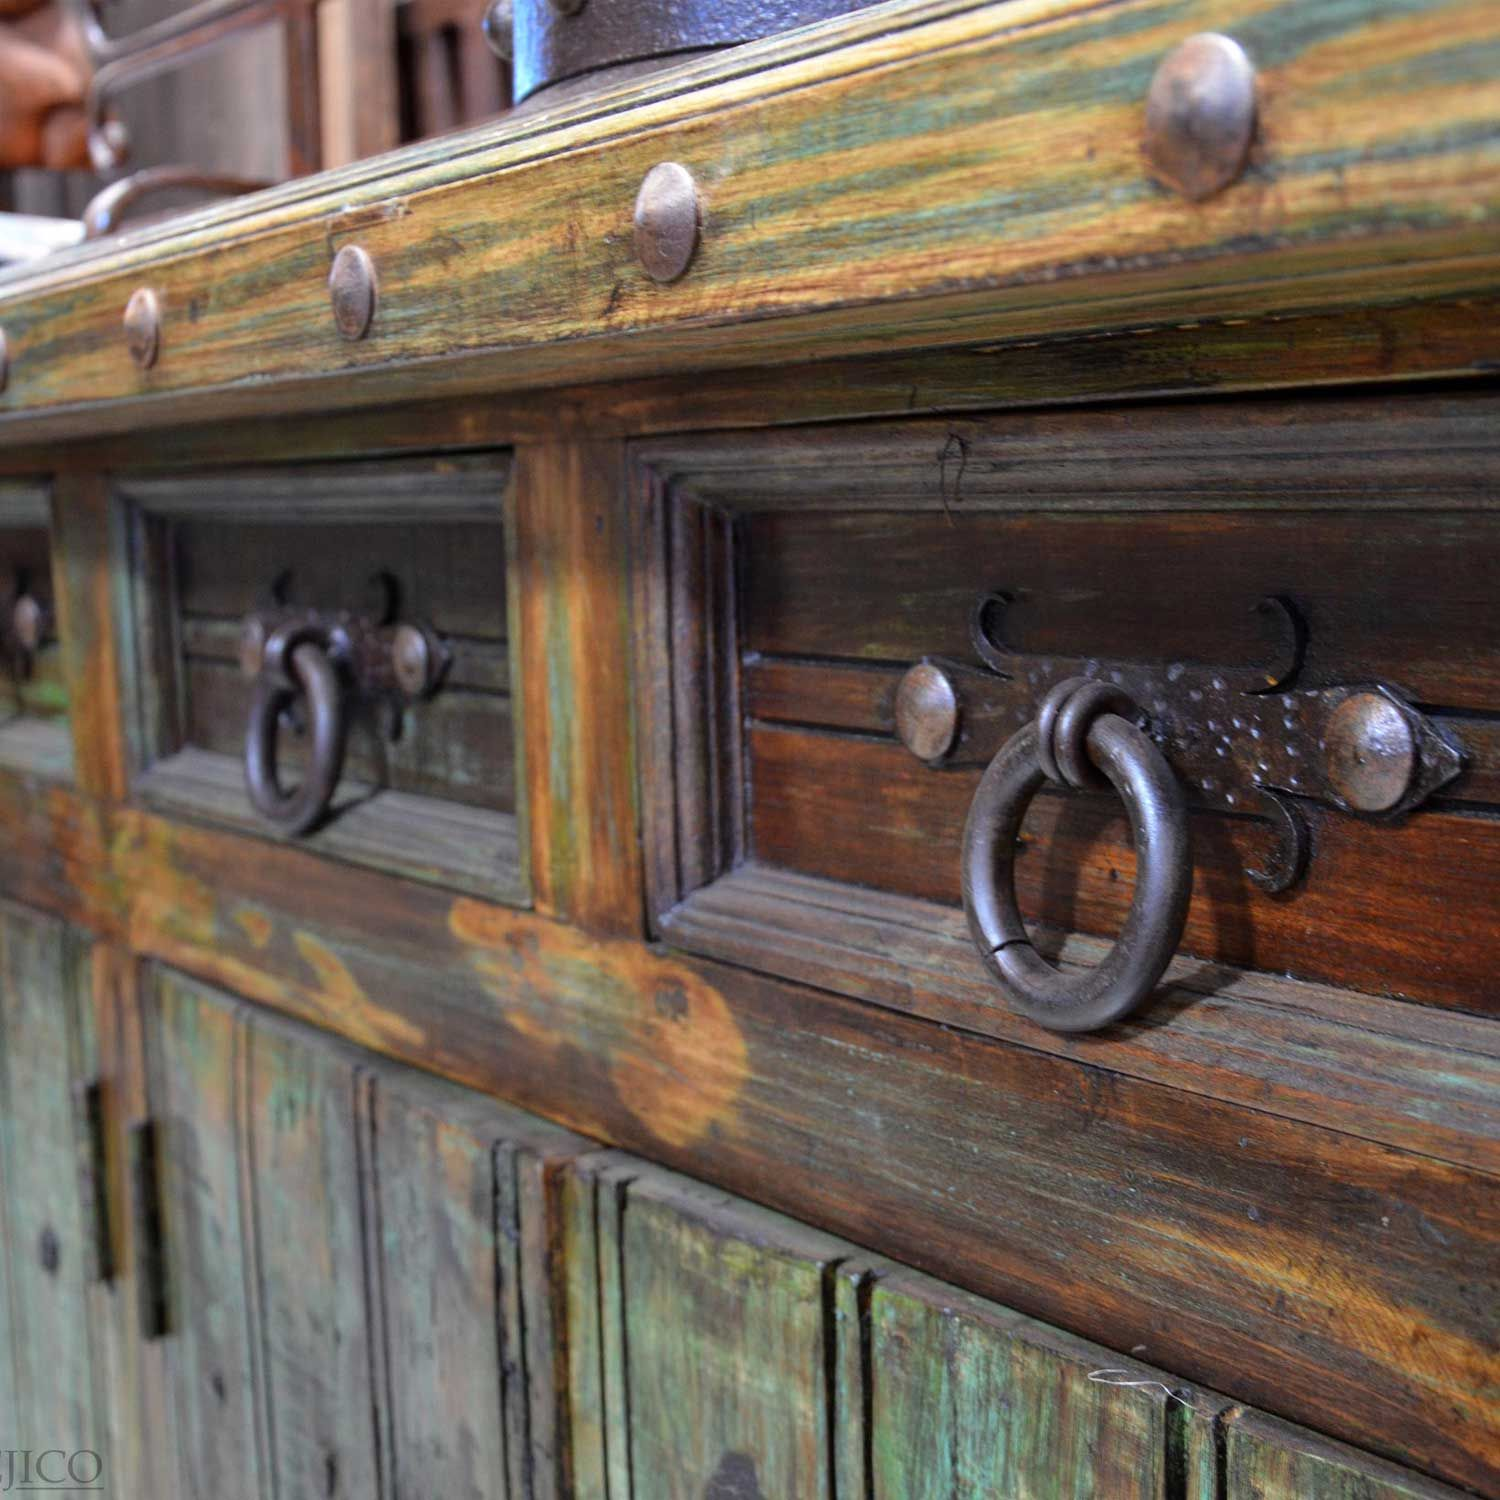 Kitchen Cabinet Hardware Hinges Counter Designs Rustic Bail Pulls Iron Pull